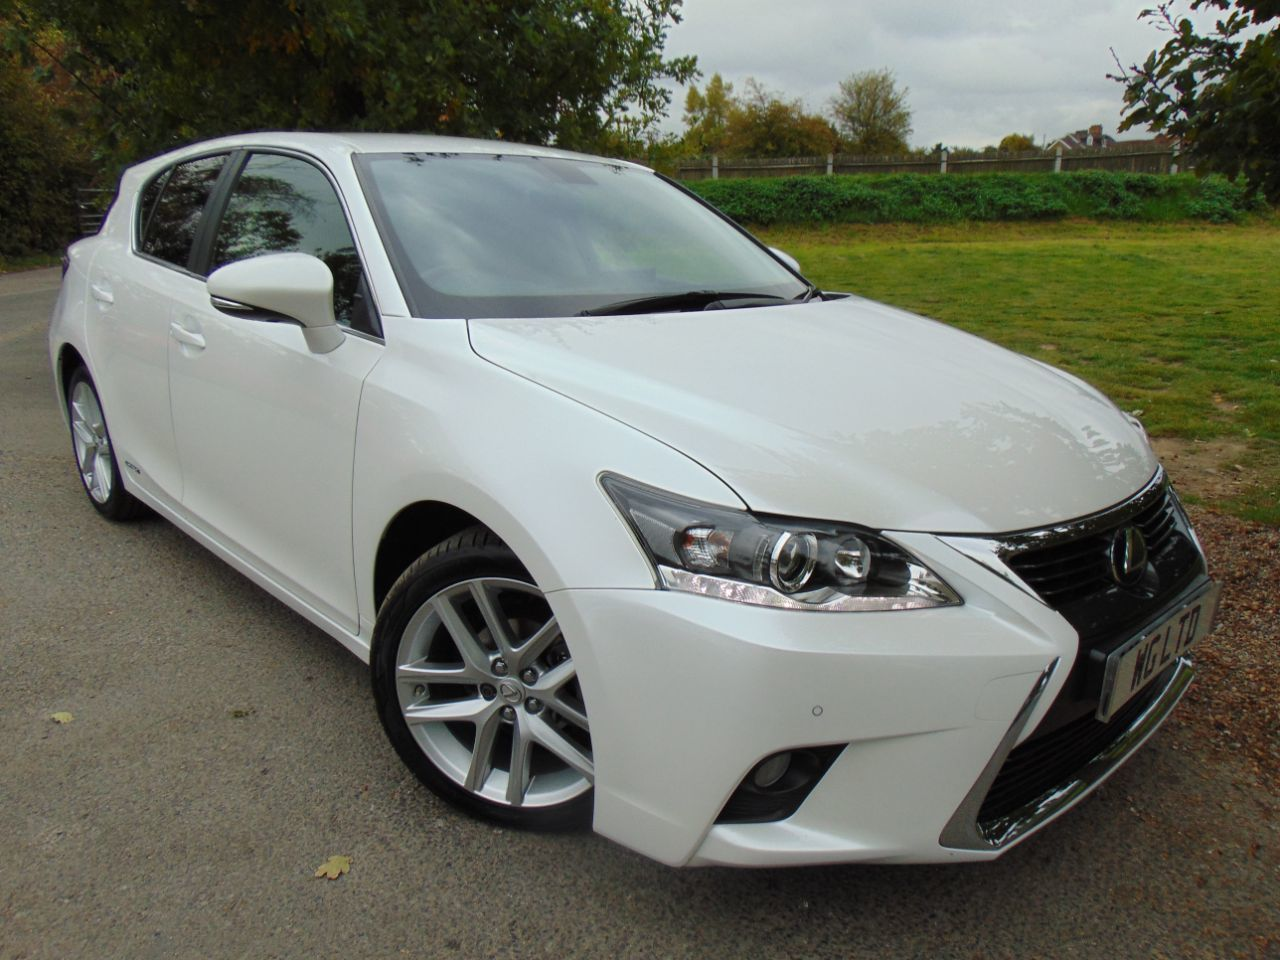 Lexus CT 200h 1.8 Advance 5dr CVT Auto (1 Owner! Nav! Heated Seats! +++) Hatchback Petrol / Electric Hybrid White